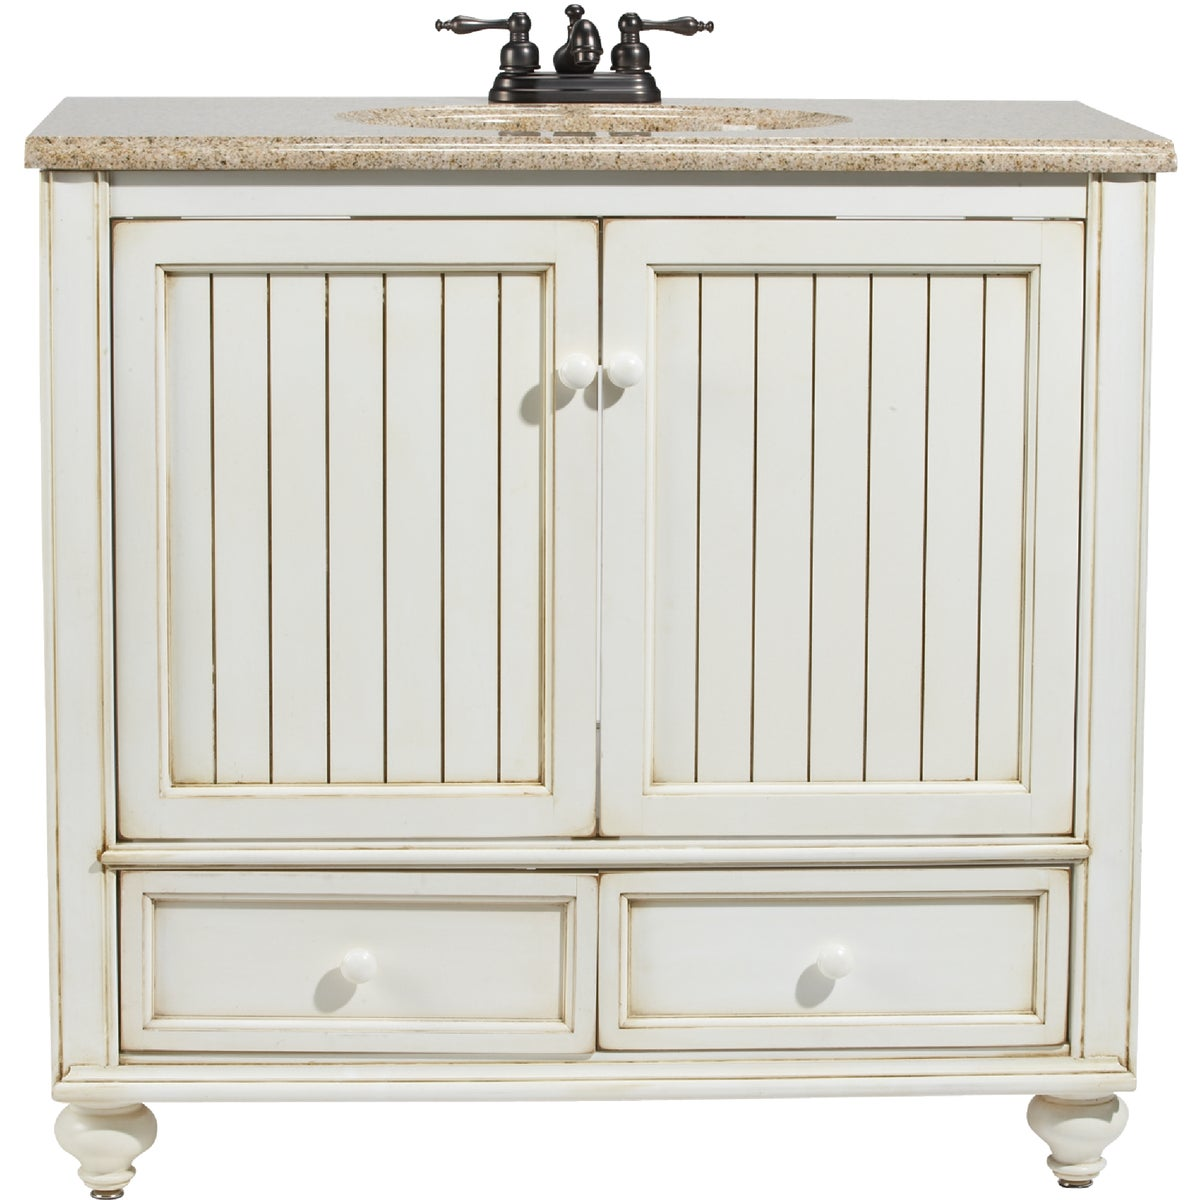 36X21 WH BSTL BCH VANITY - BB3621D by Sunnywood Products